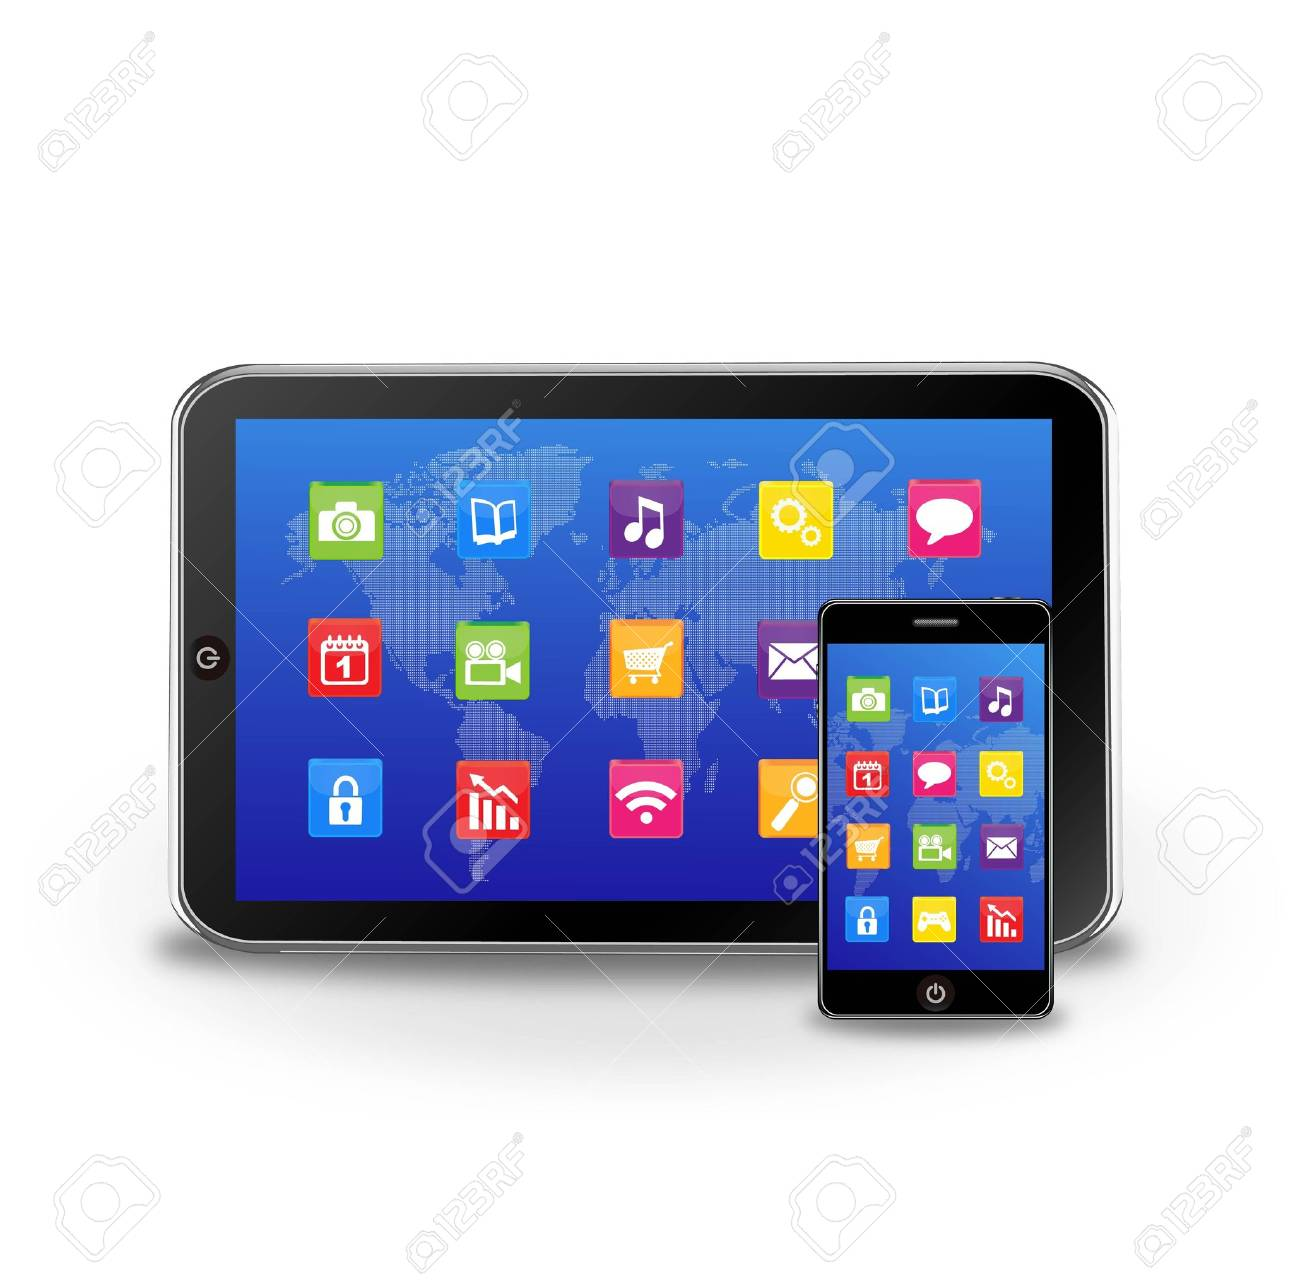 Illustration of a tablet and smartphone Stock Vector - 12270241